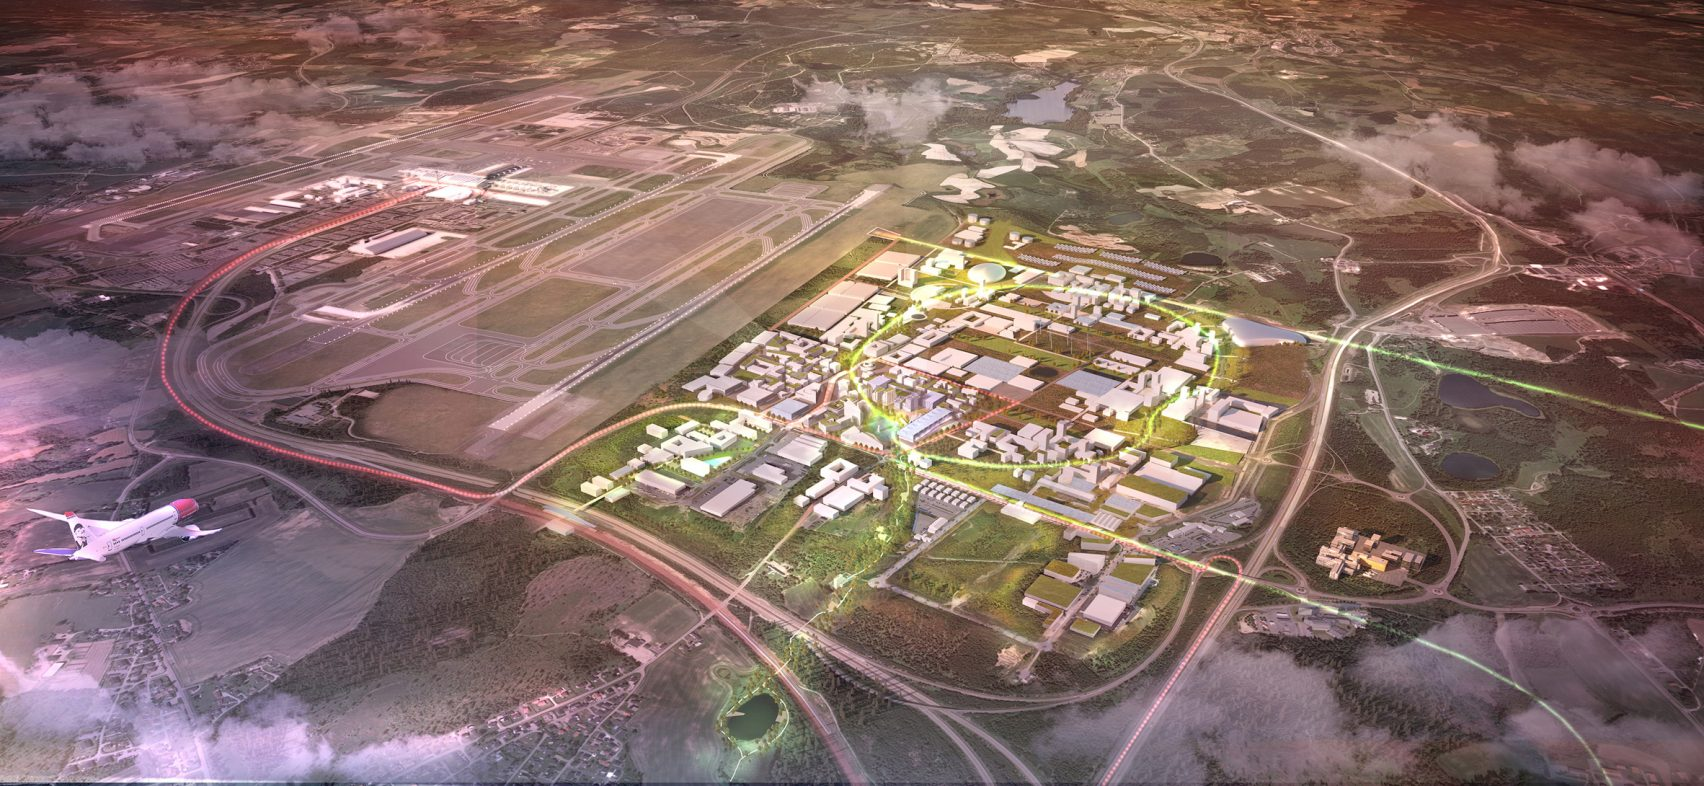 Norway's proposed Oslo Airport City. Image Credit: Futurism